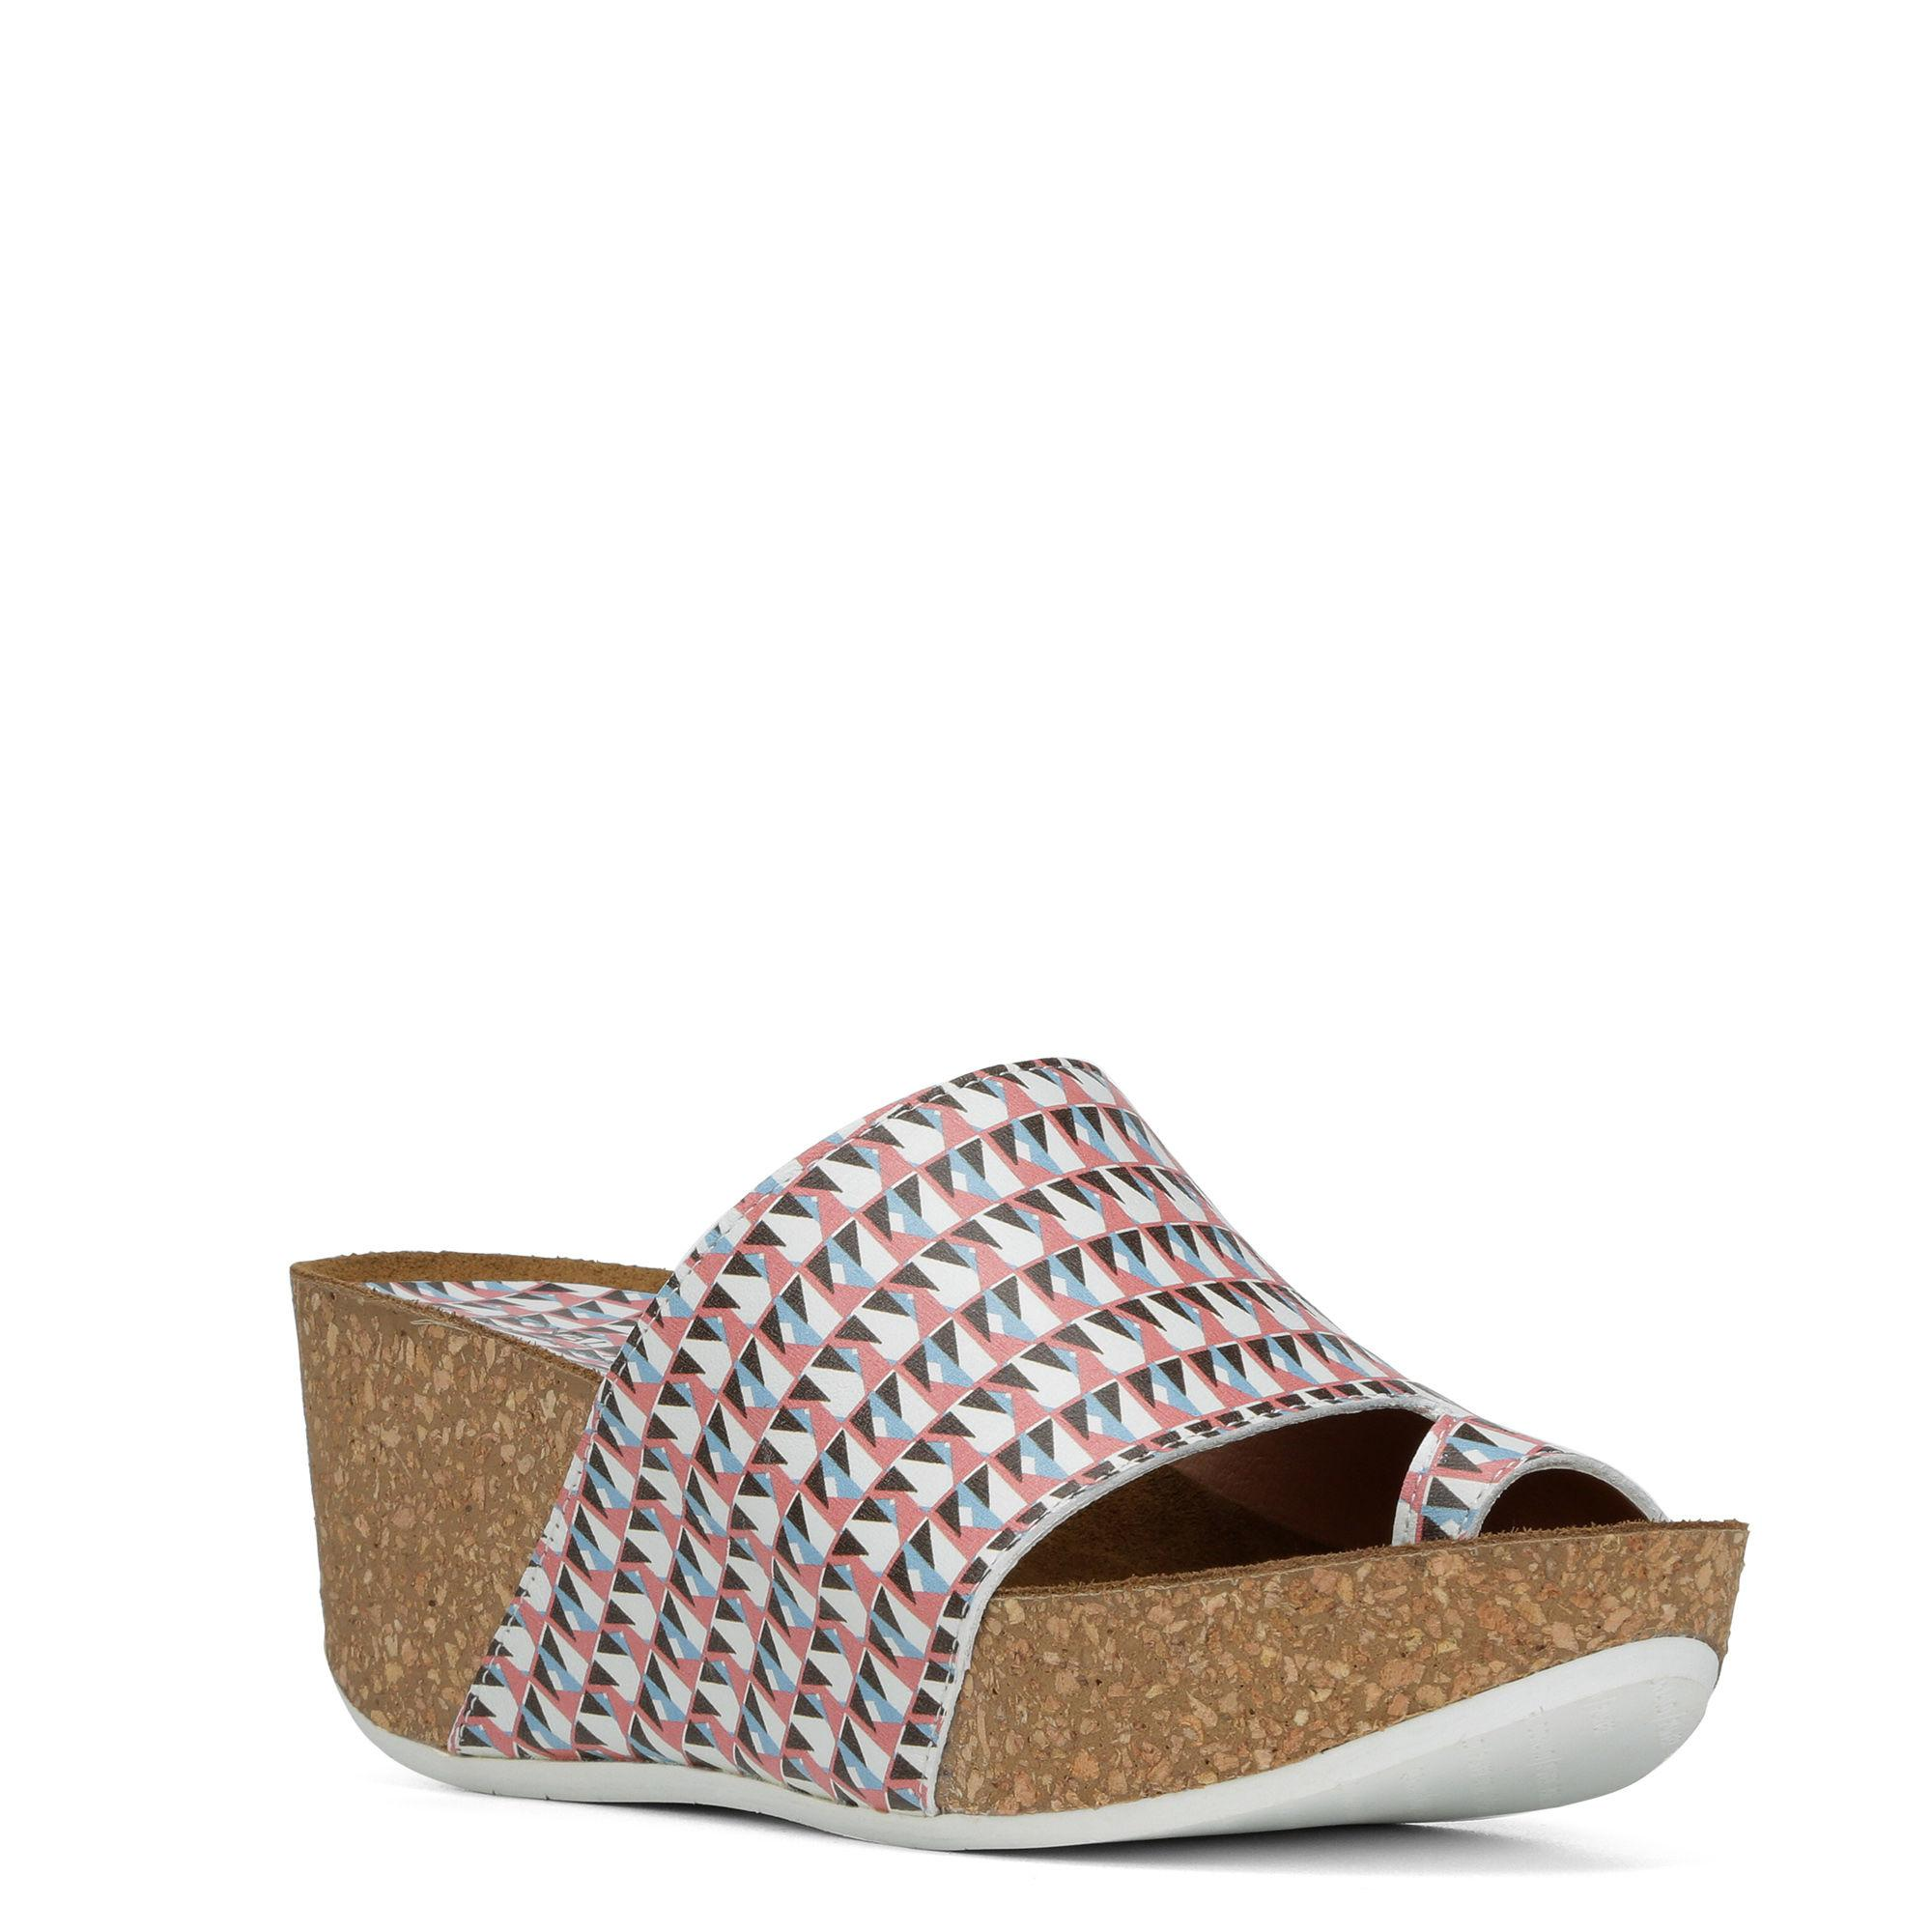 Ginie Geo Print Leather Wedge Sandals sfPS8a3iS